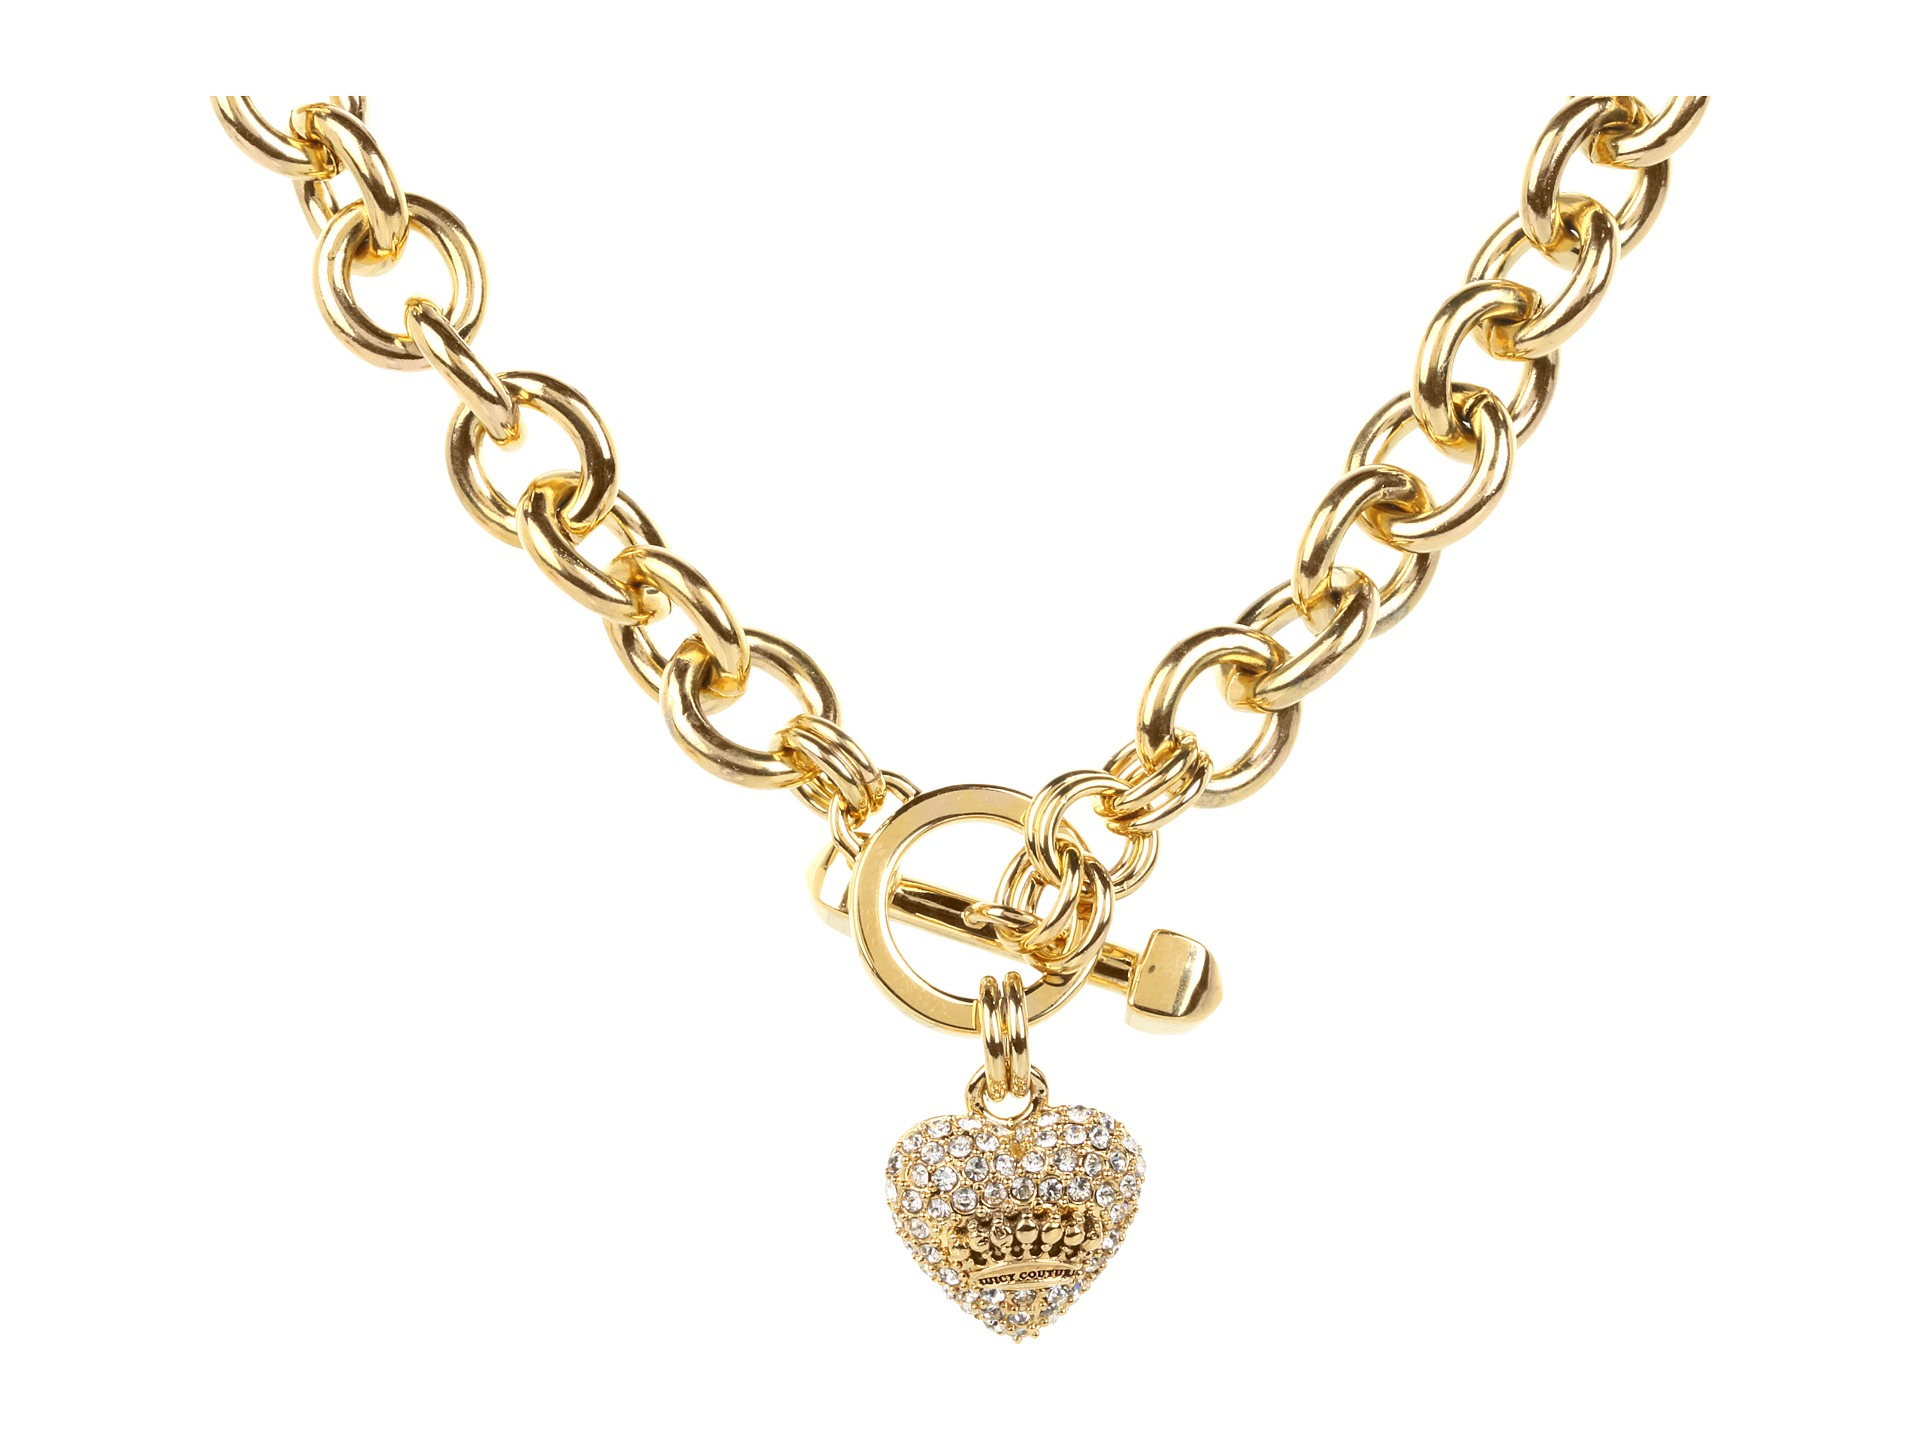 Juicy couture juicy pave icon necklace rose gold shipped for Juicy couture jewelry necklace